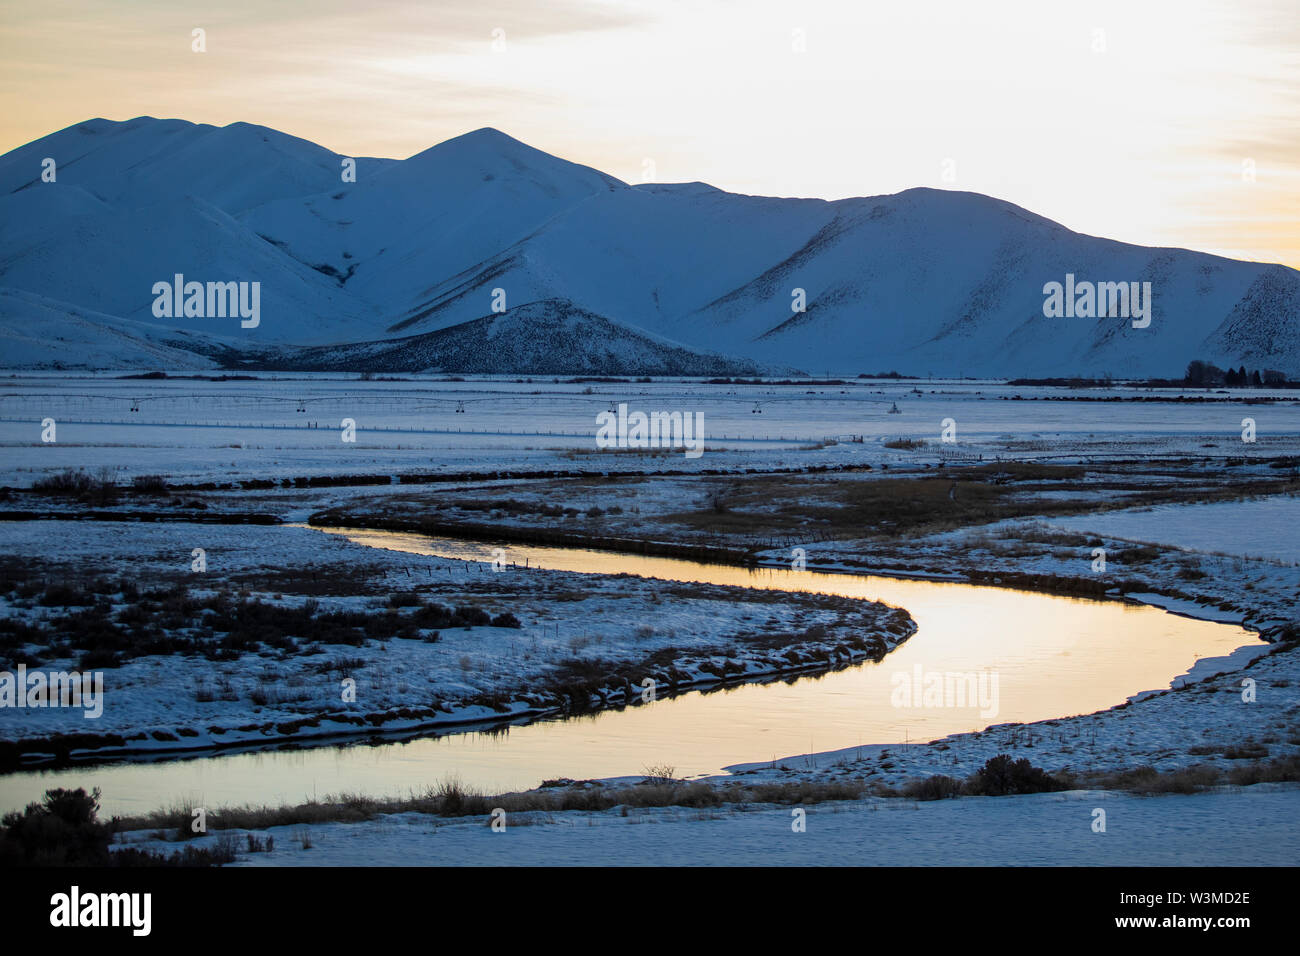 River and mountains at sunrise in Picabo, Idaho - Stock Image